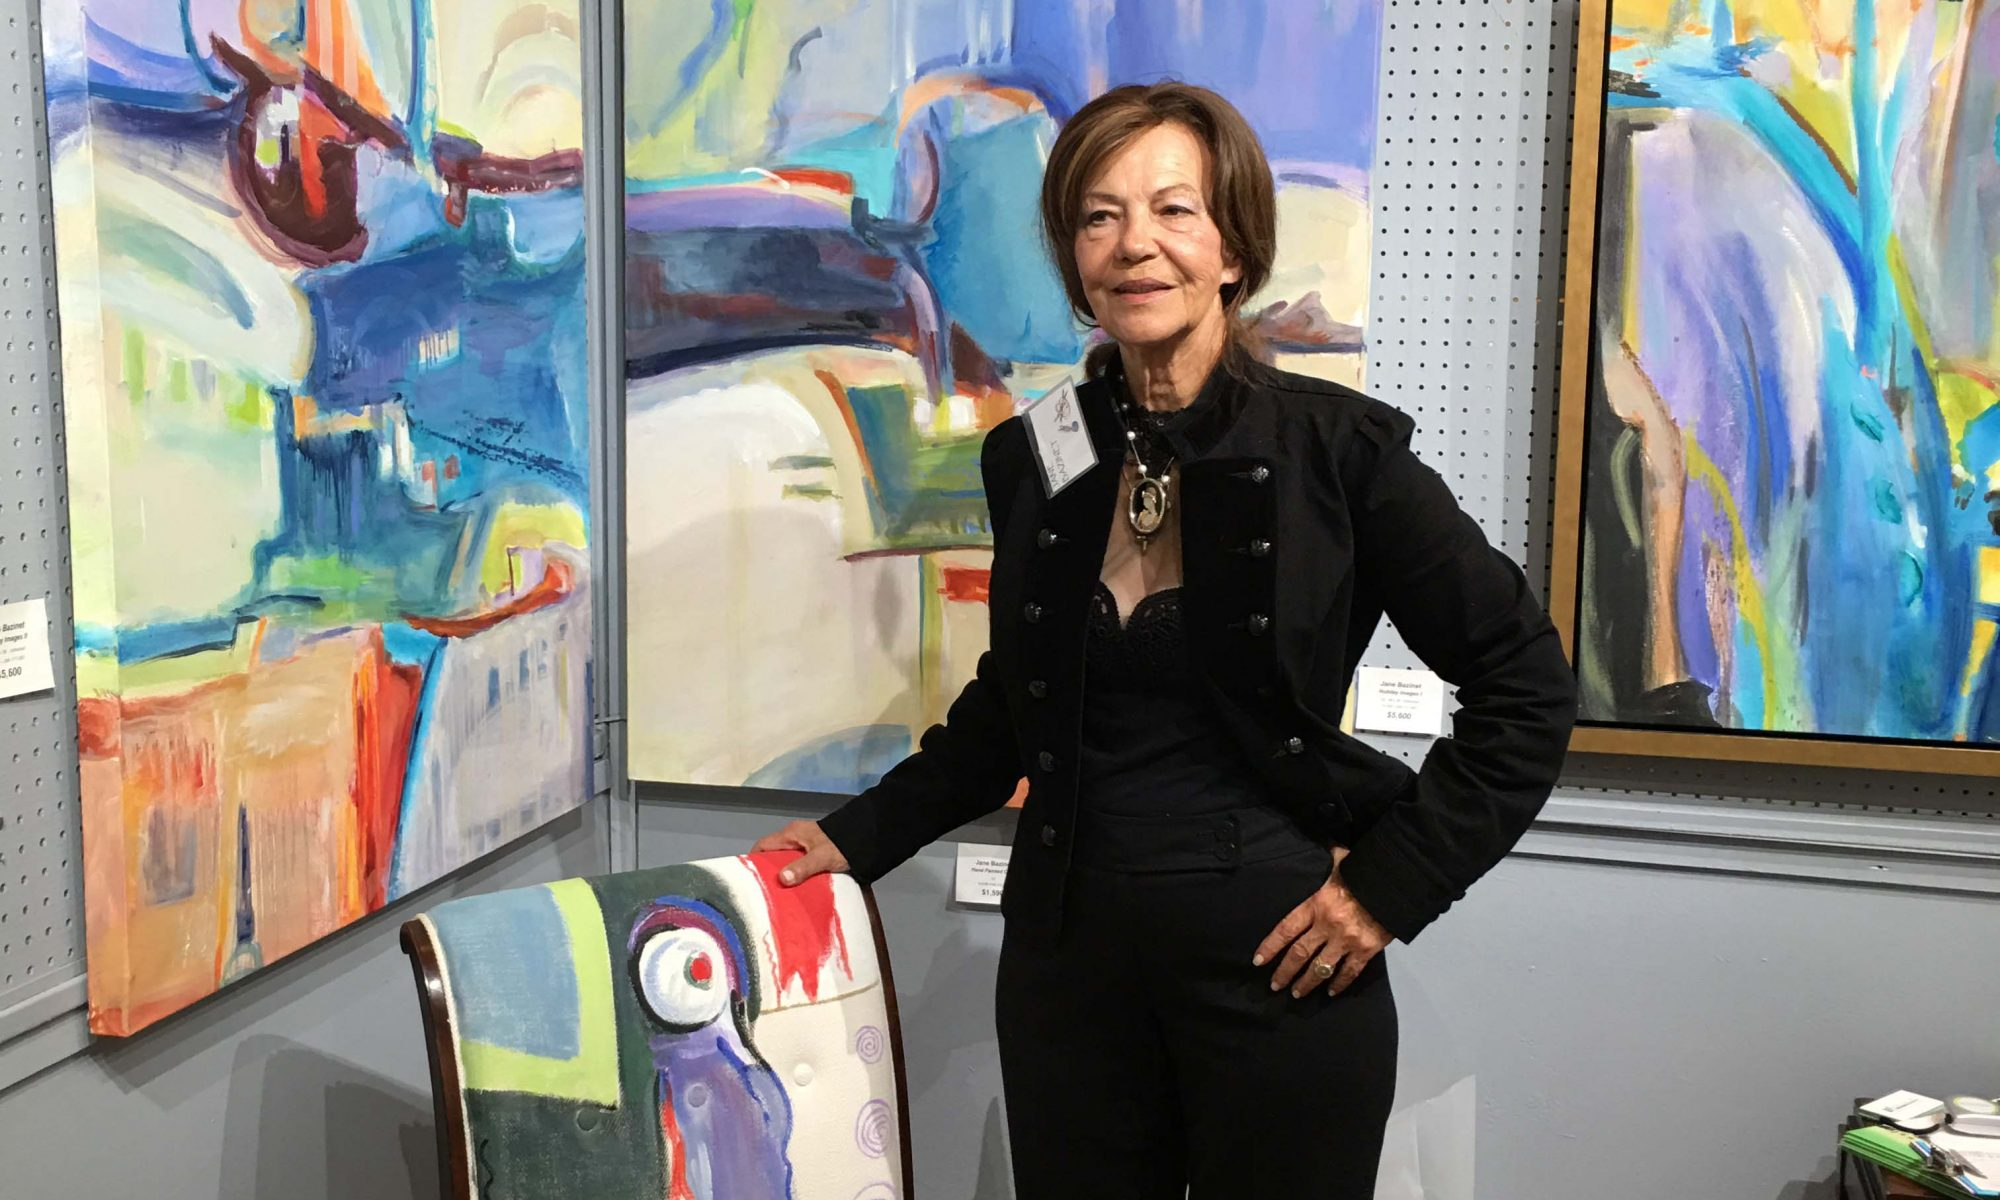 Jane Bazinet at Coconut Grove Gallery Showing Her Abstract Paintings